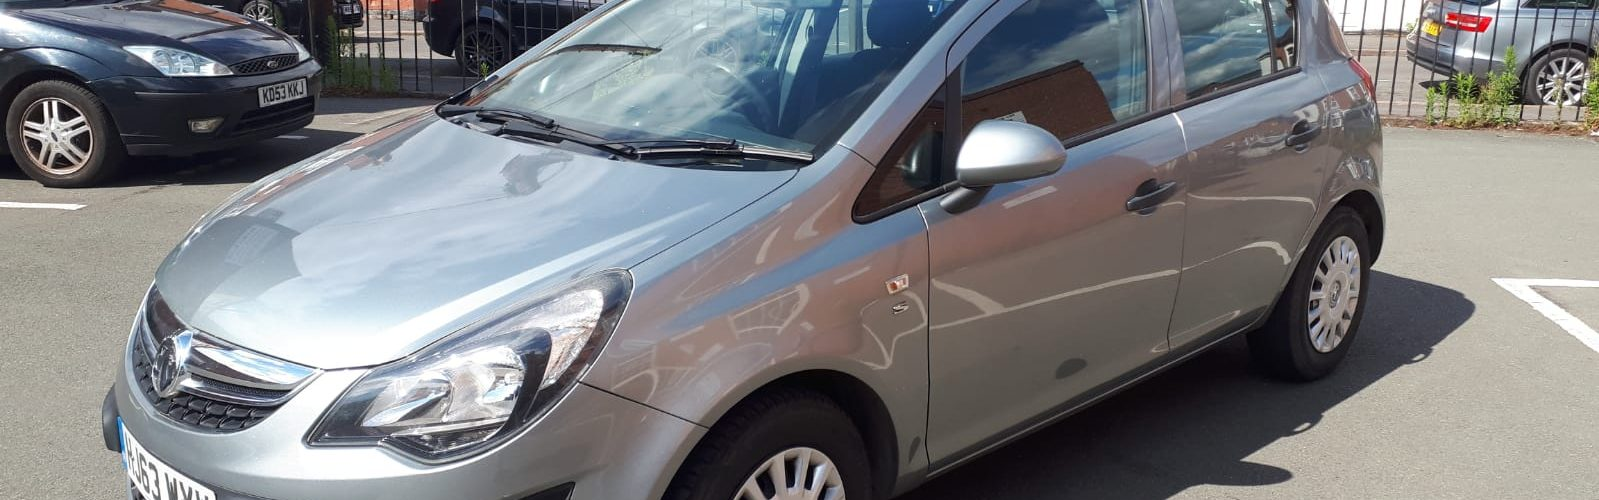 Leicester Second Hand Cars - 2013 Vauxhall Corsa